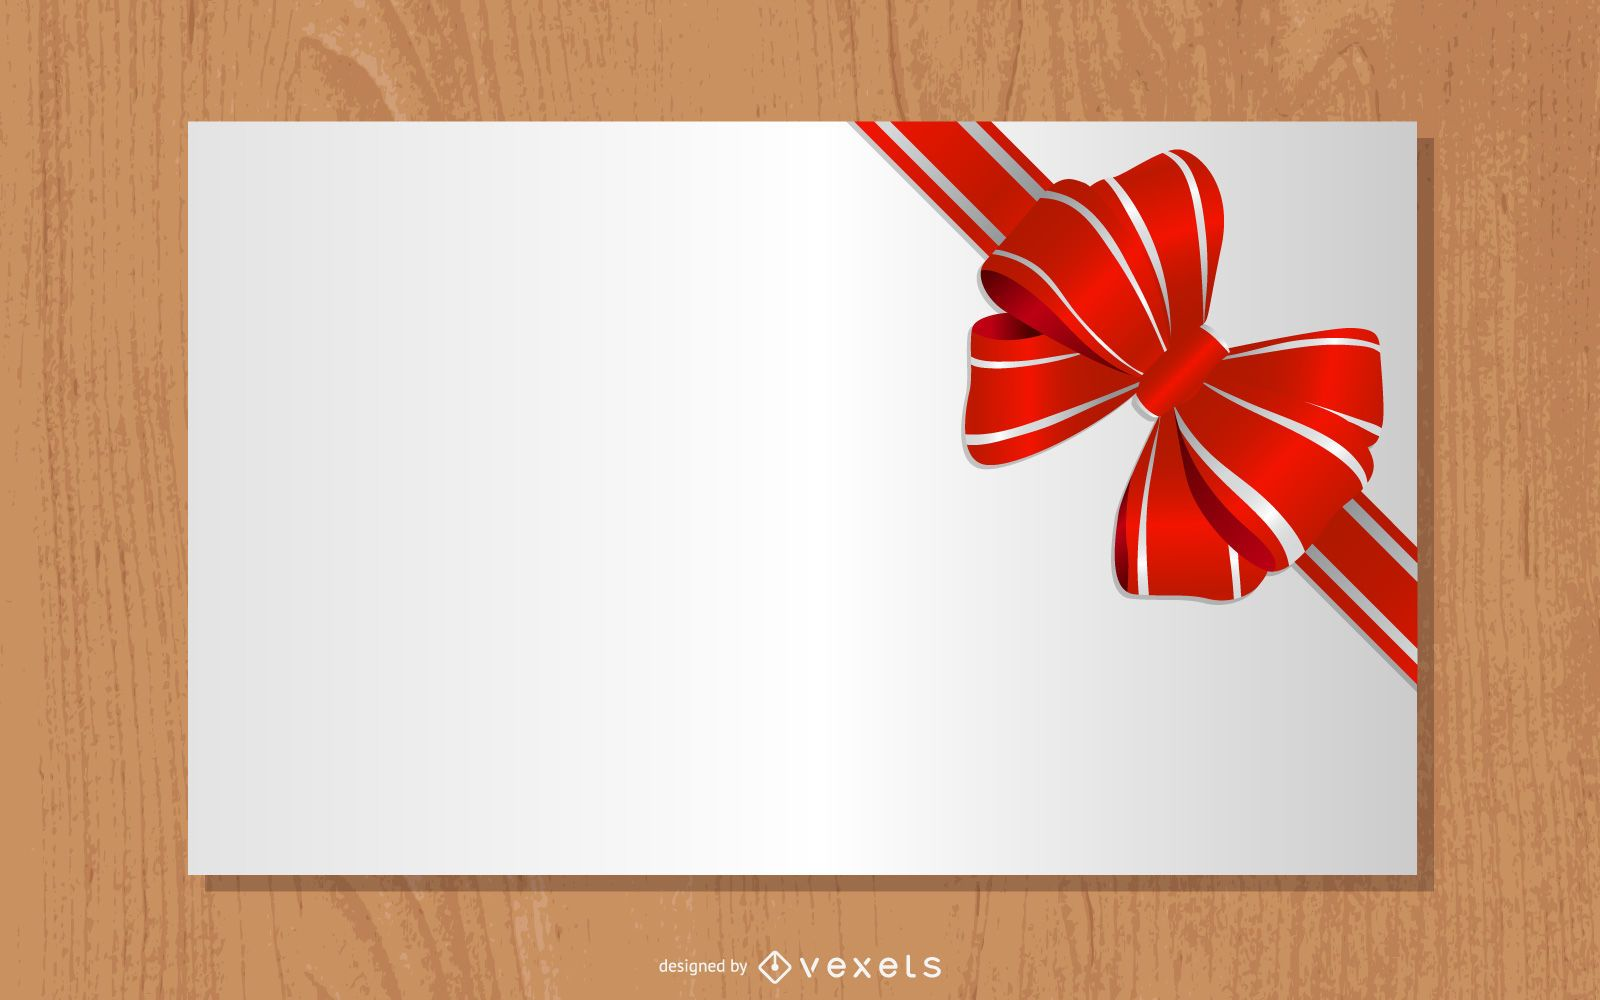 Detailed Gift Ribbon Tied on a Paper